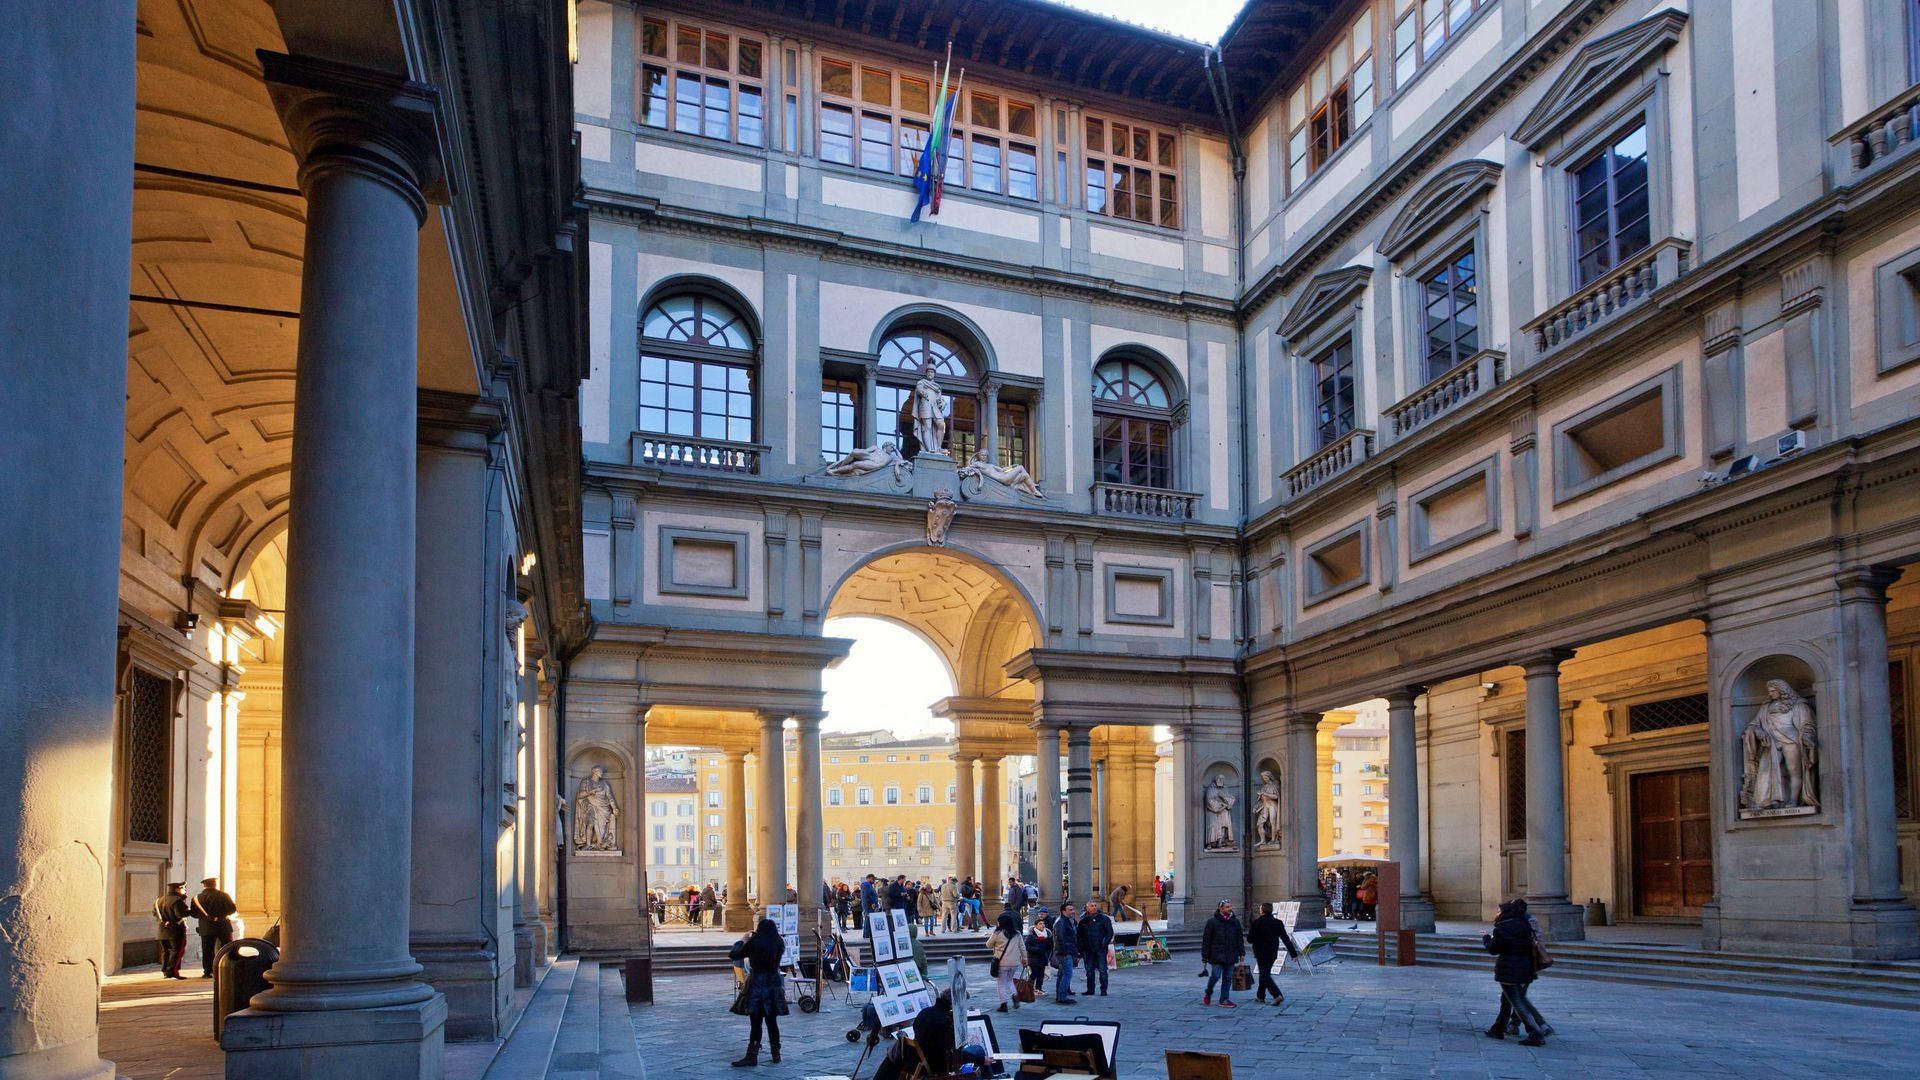 Uffizi Gallery in Florence Audio Guided Tour